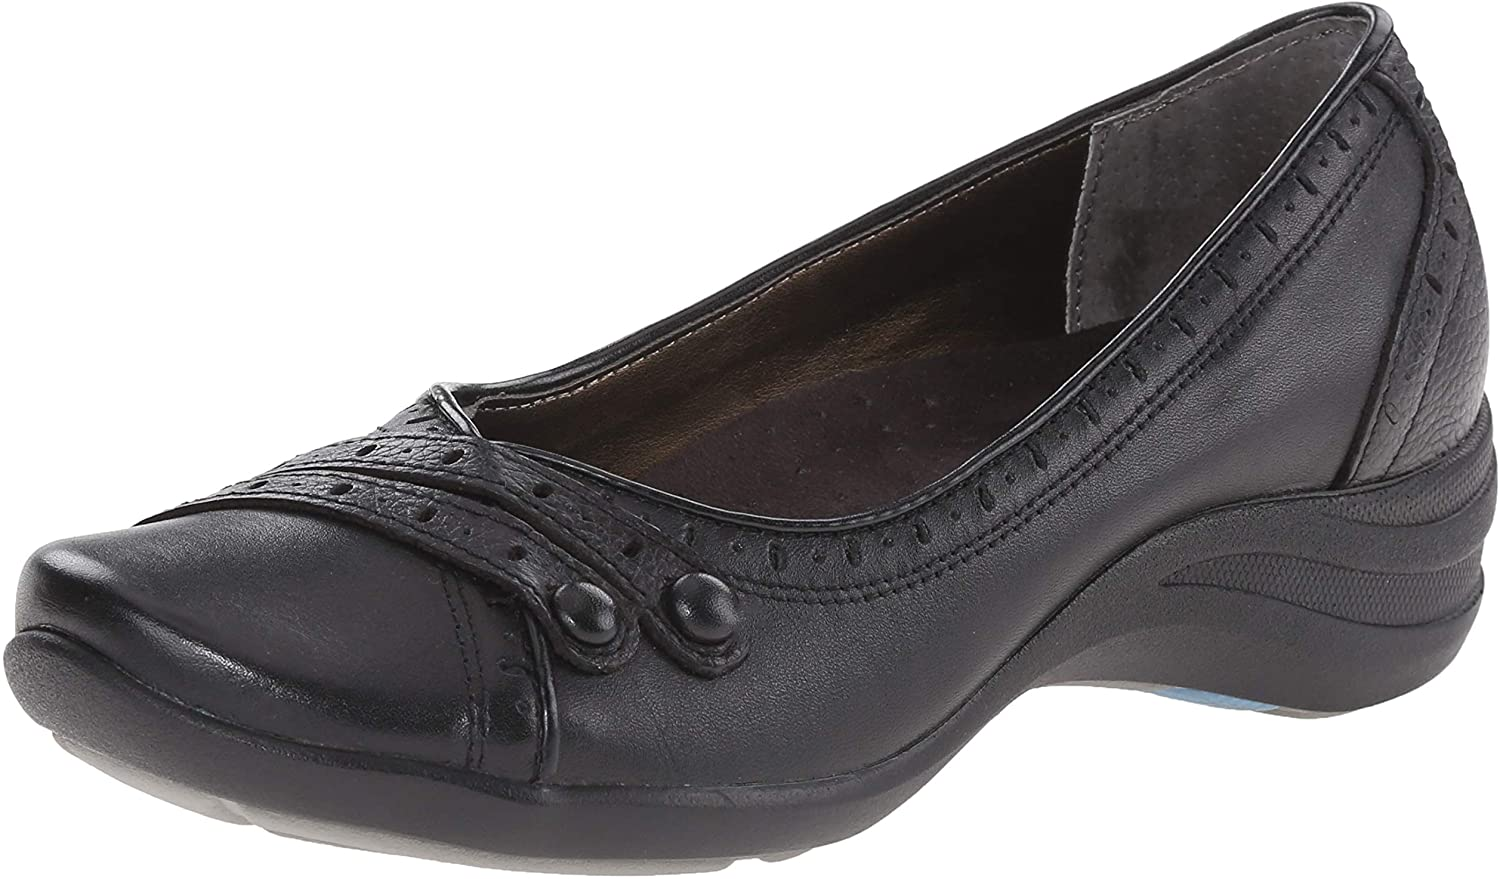 Hush Puppies Women's Financial sales sale Burlesque Loafer Animer and price revision